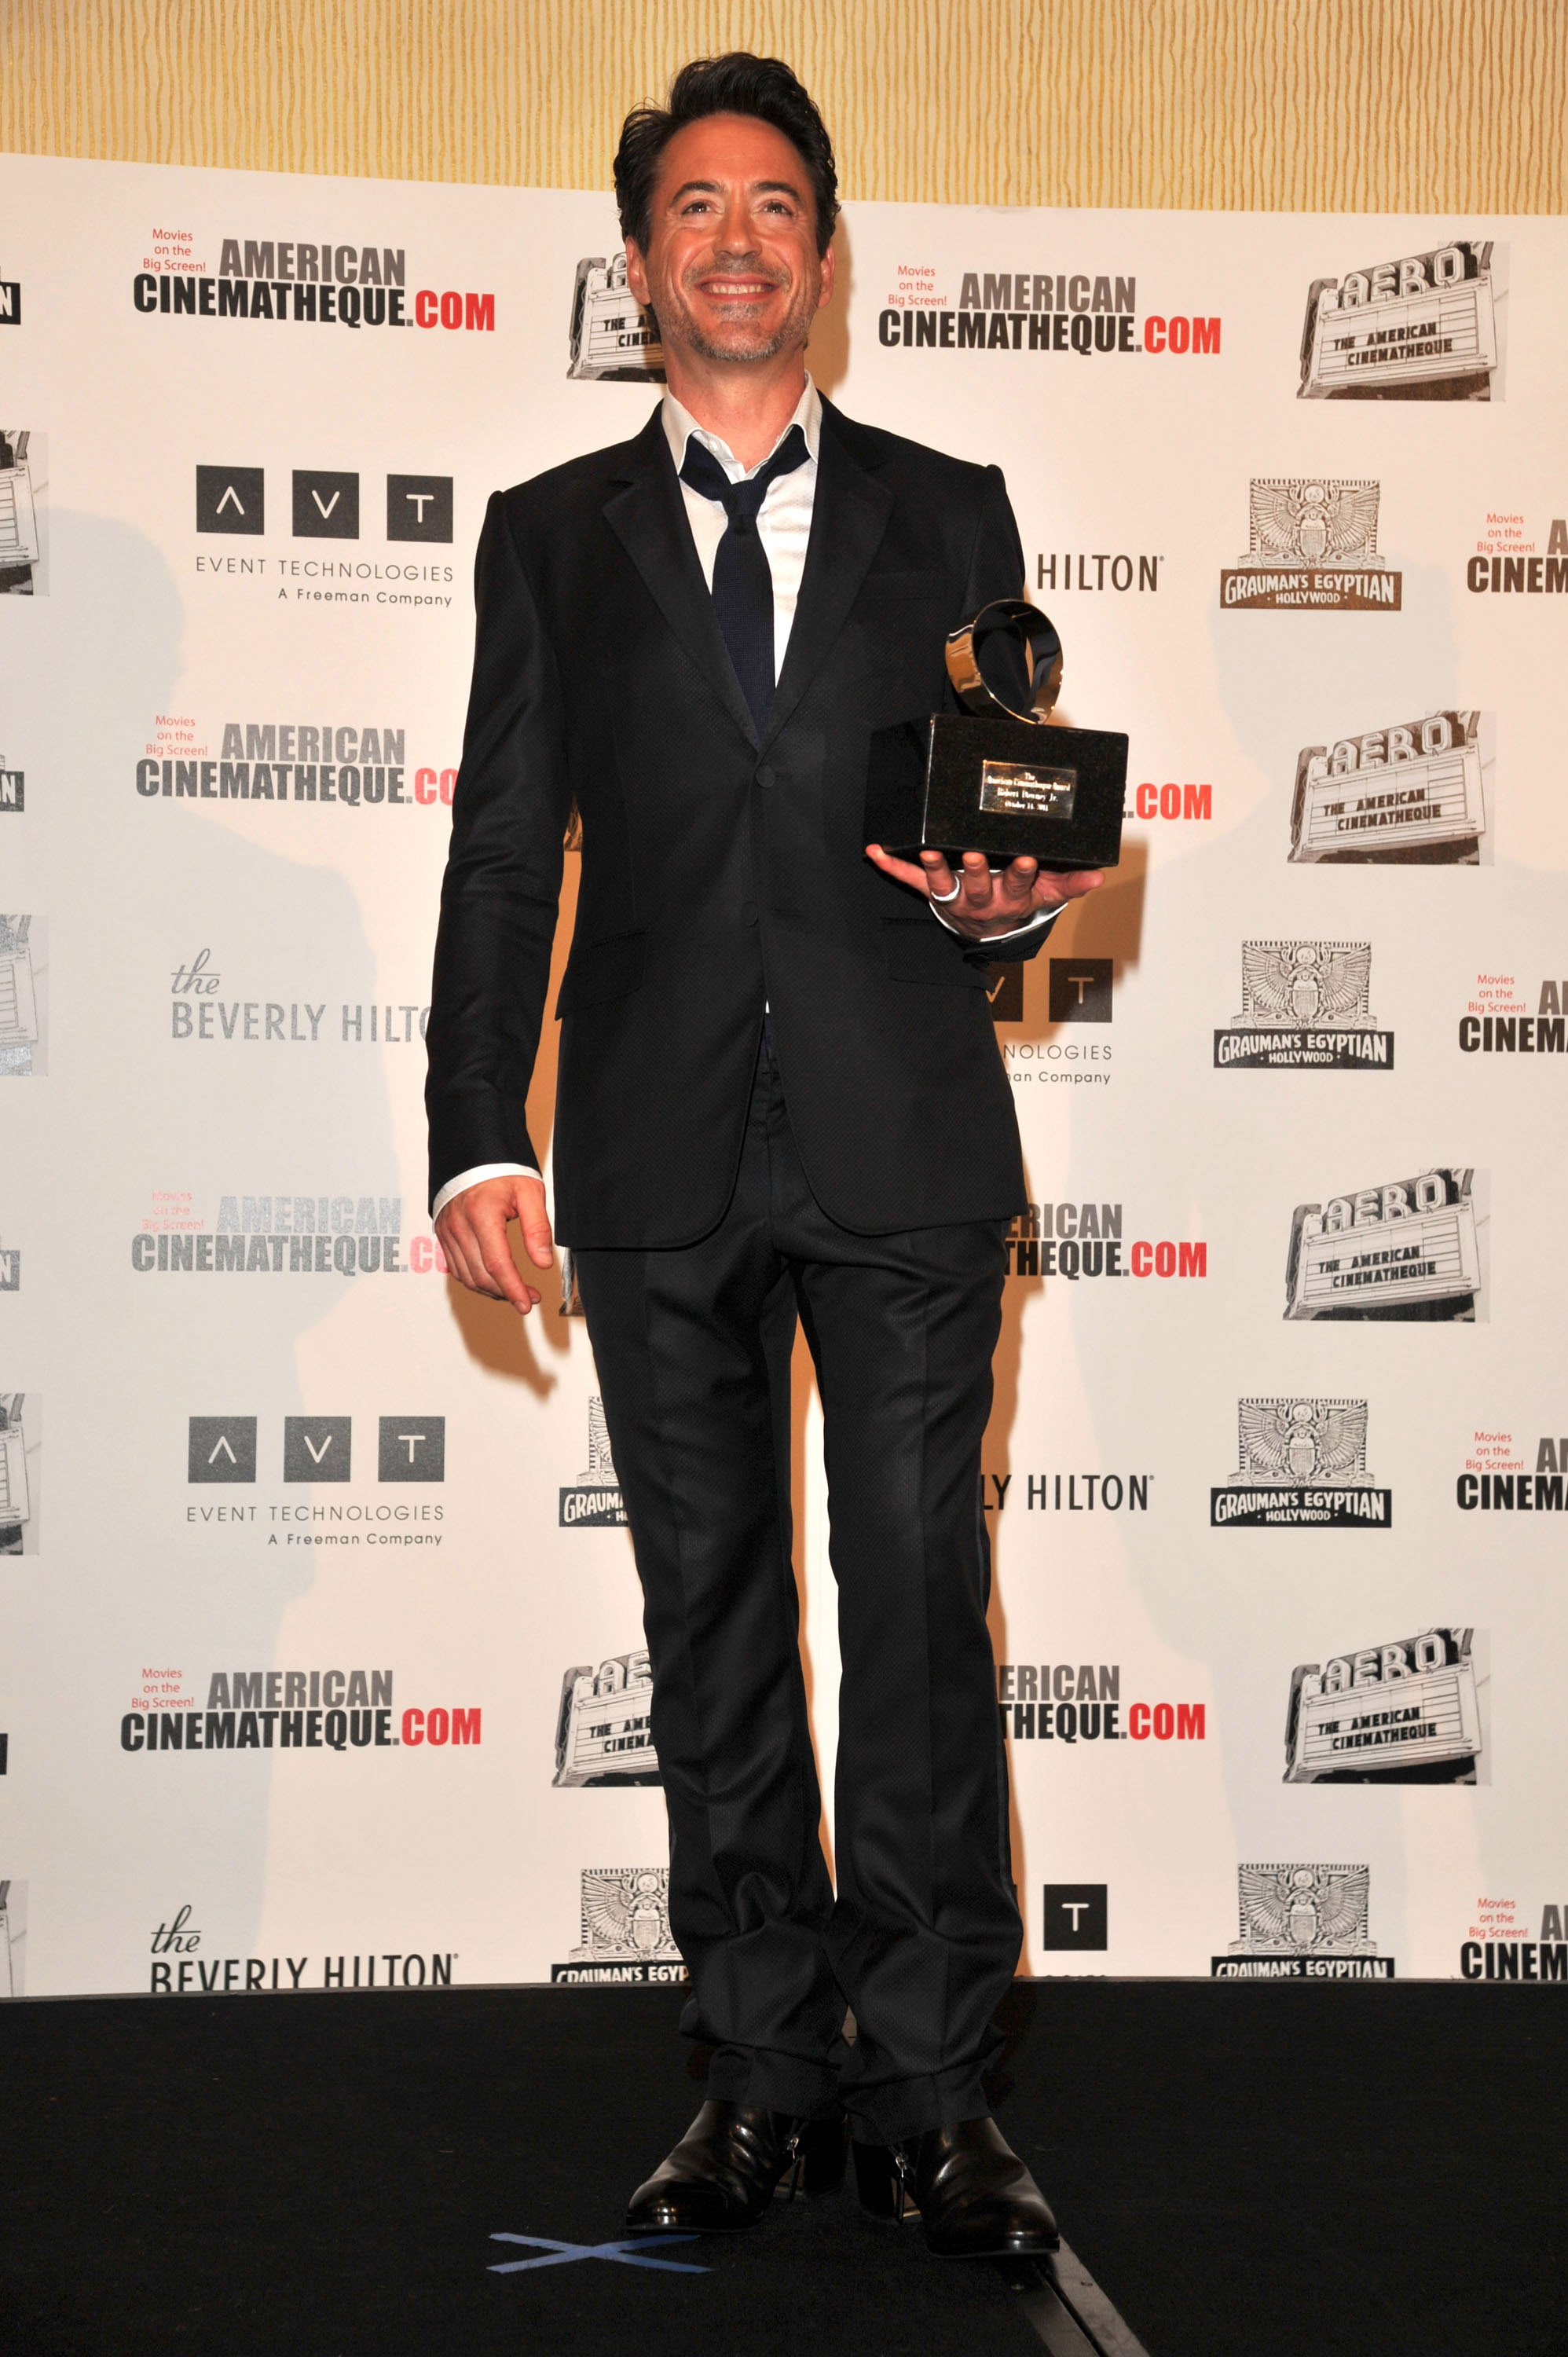 Robert Downey Jr. collected his award.